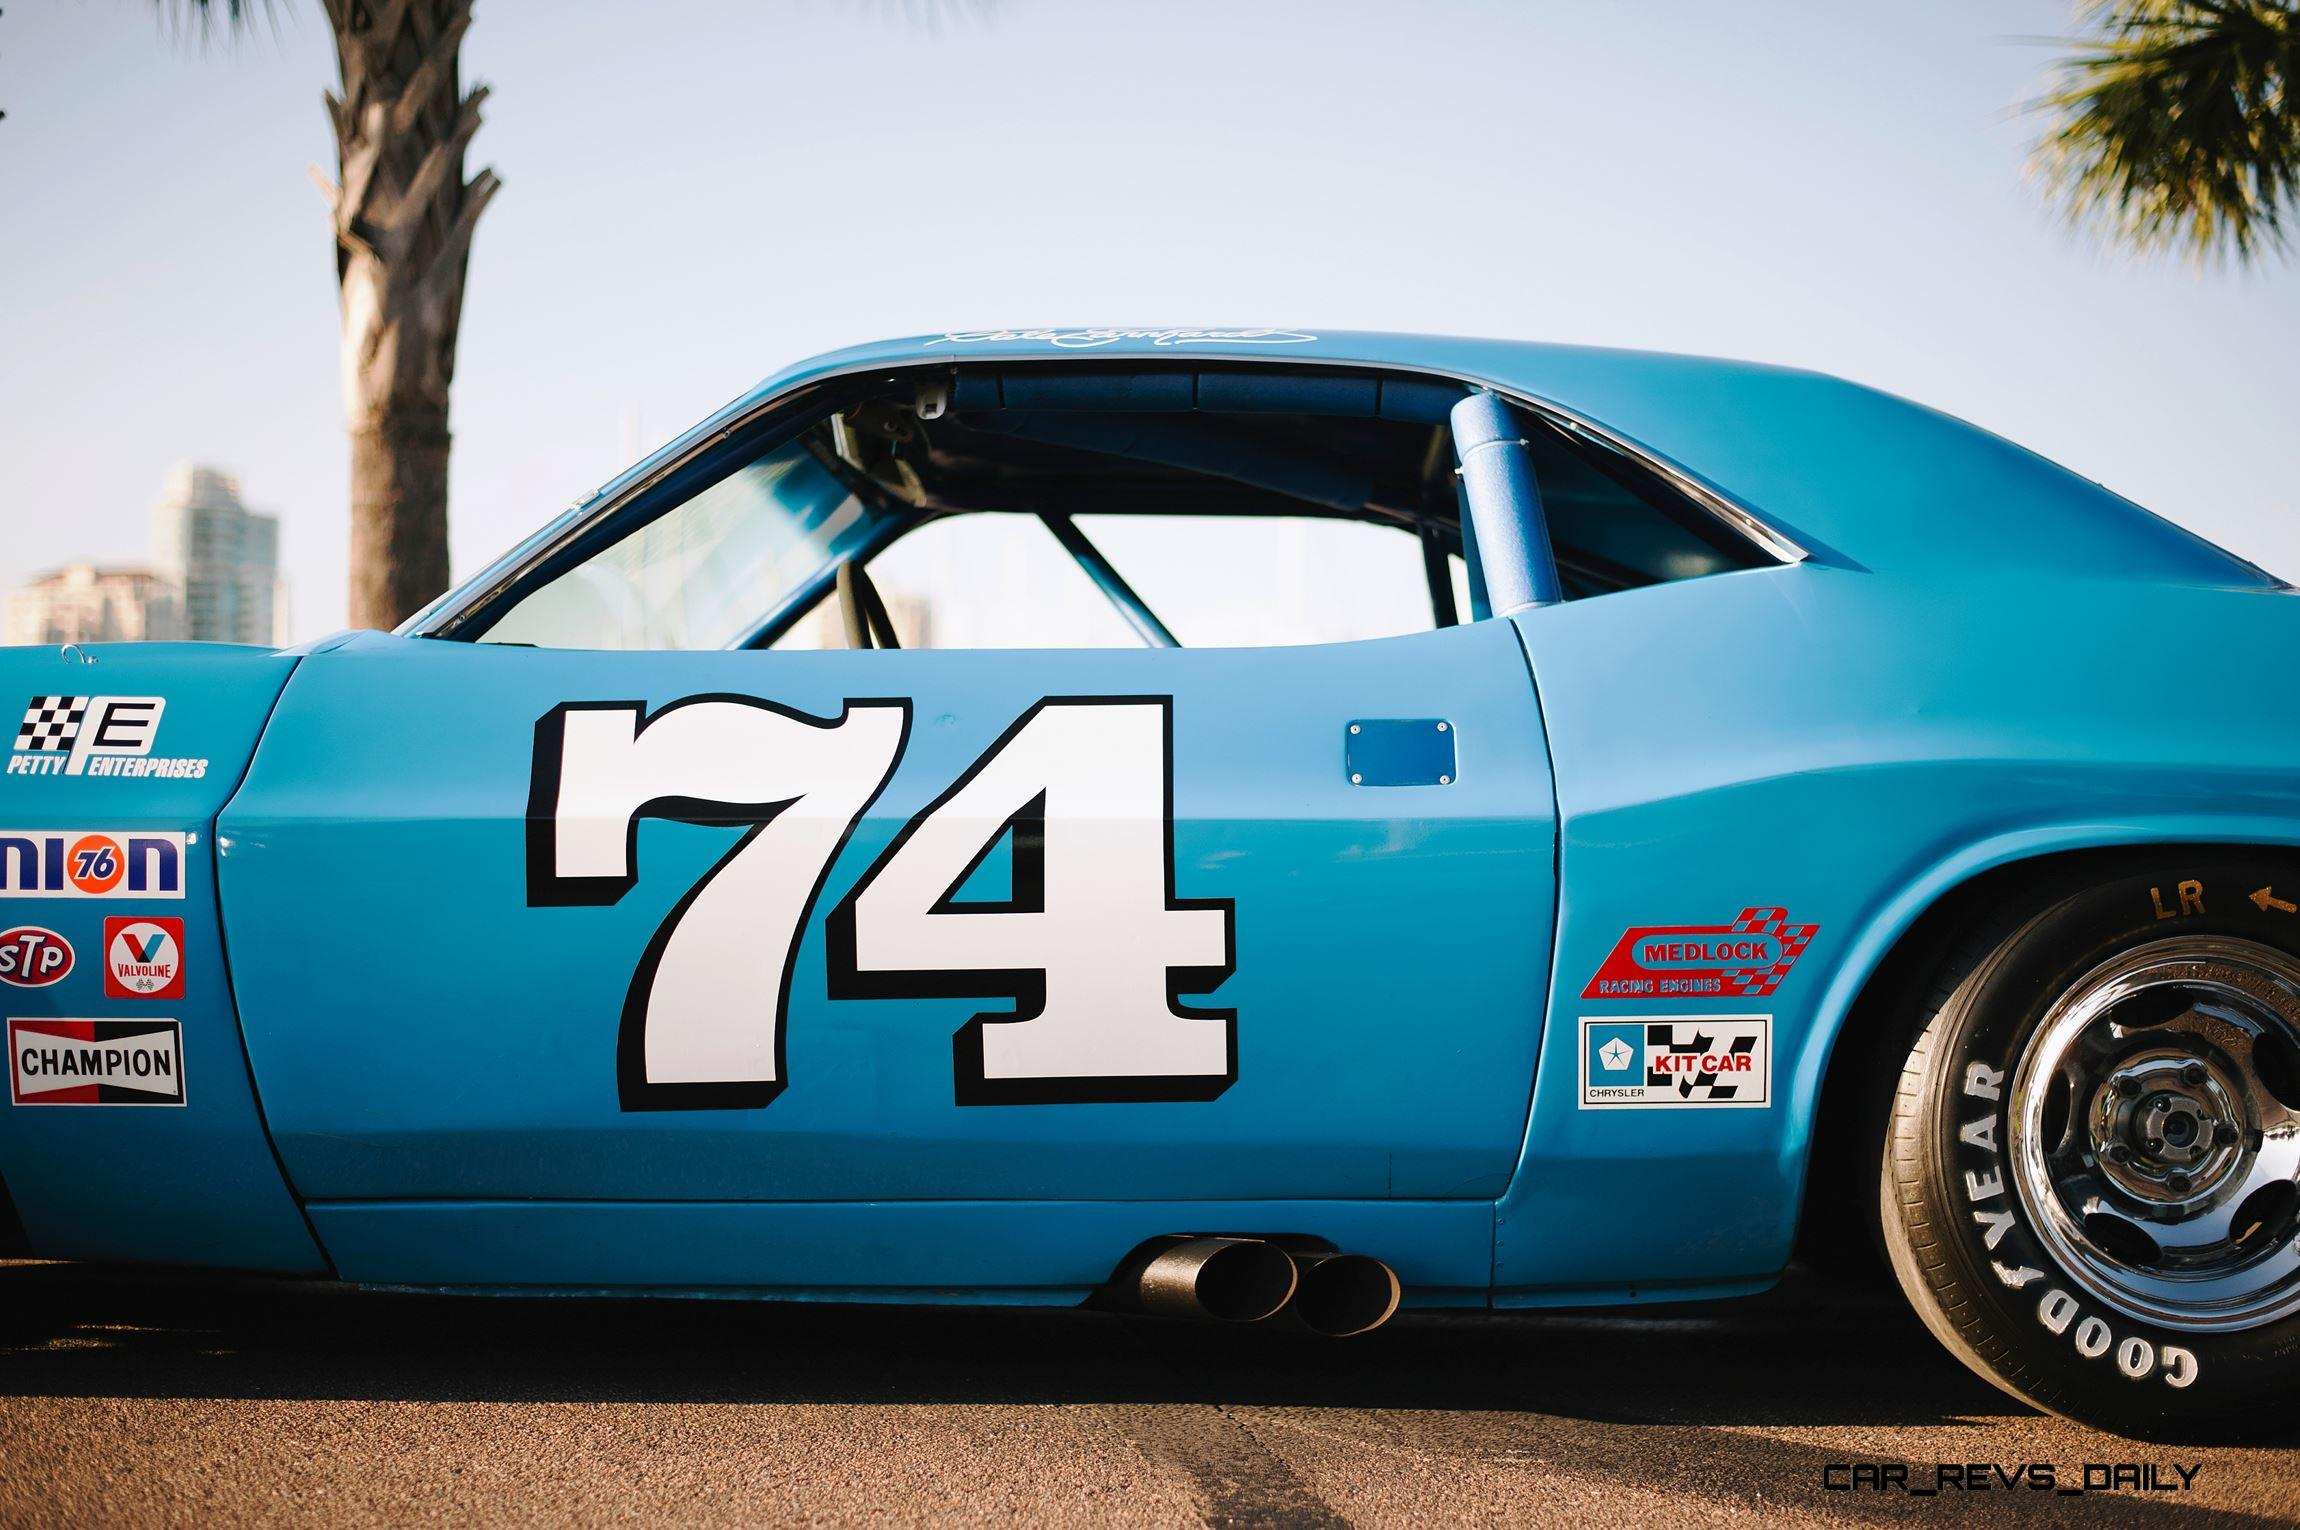 1973 Dodge Challenger Race Car Ex Dale Earnhardt Saturday Night